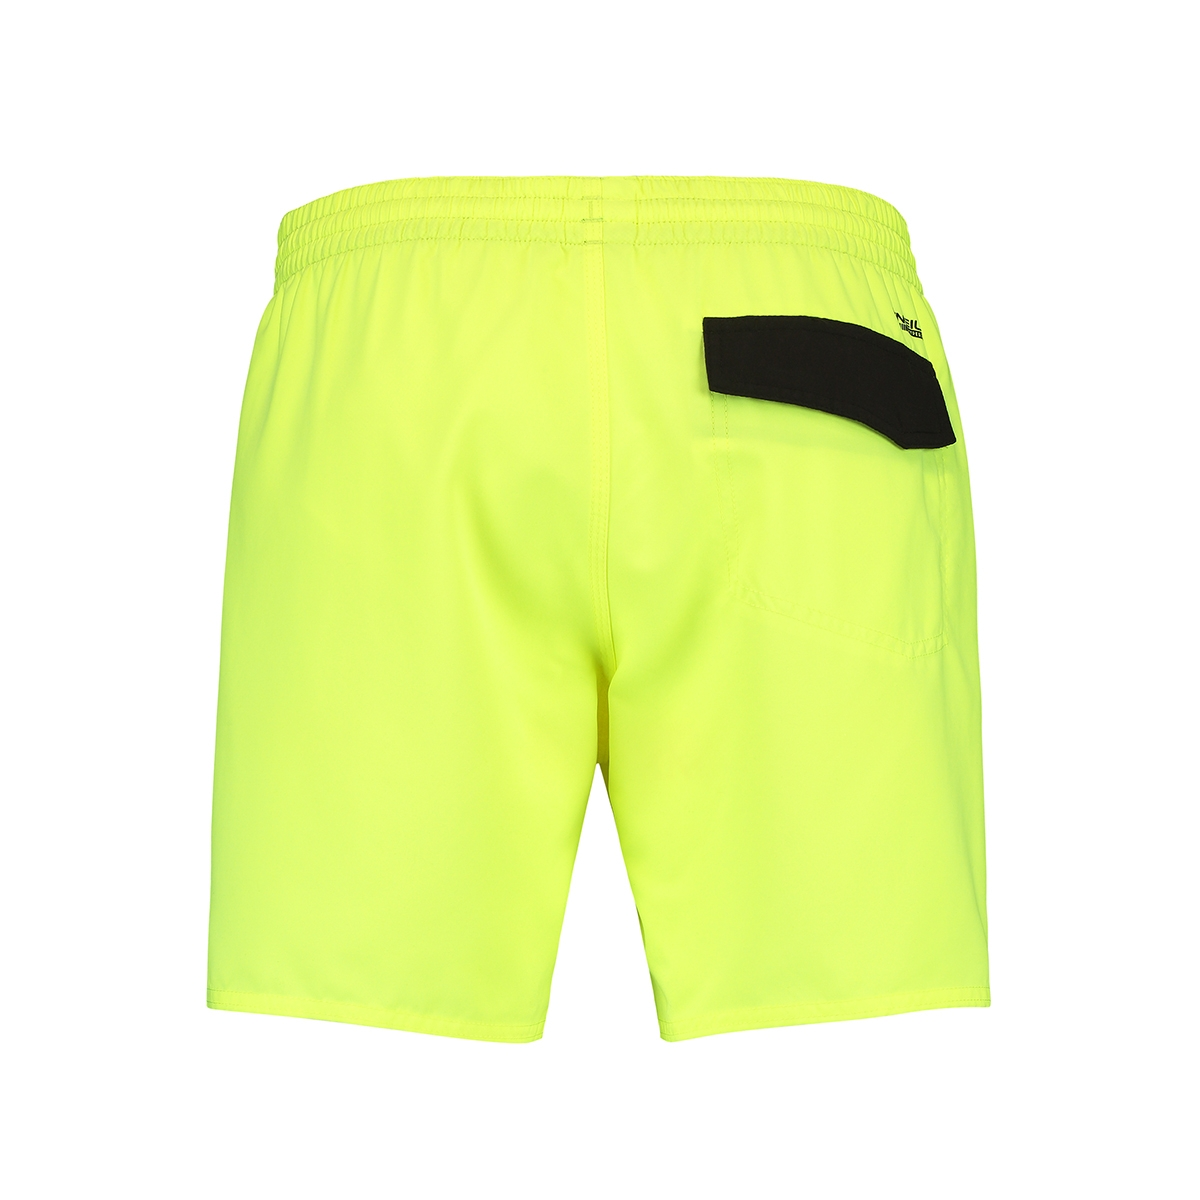 pm original cali shorts 0a3230 o`neill korte broek 2011 new safety yellow